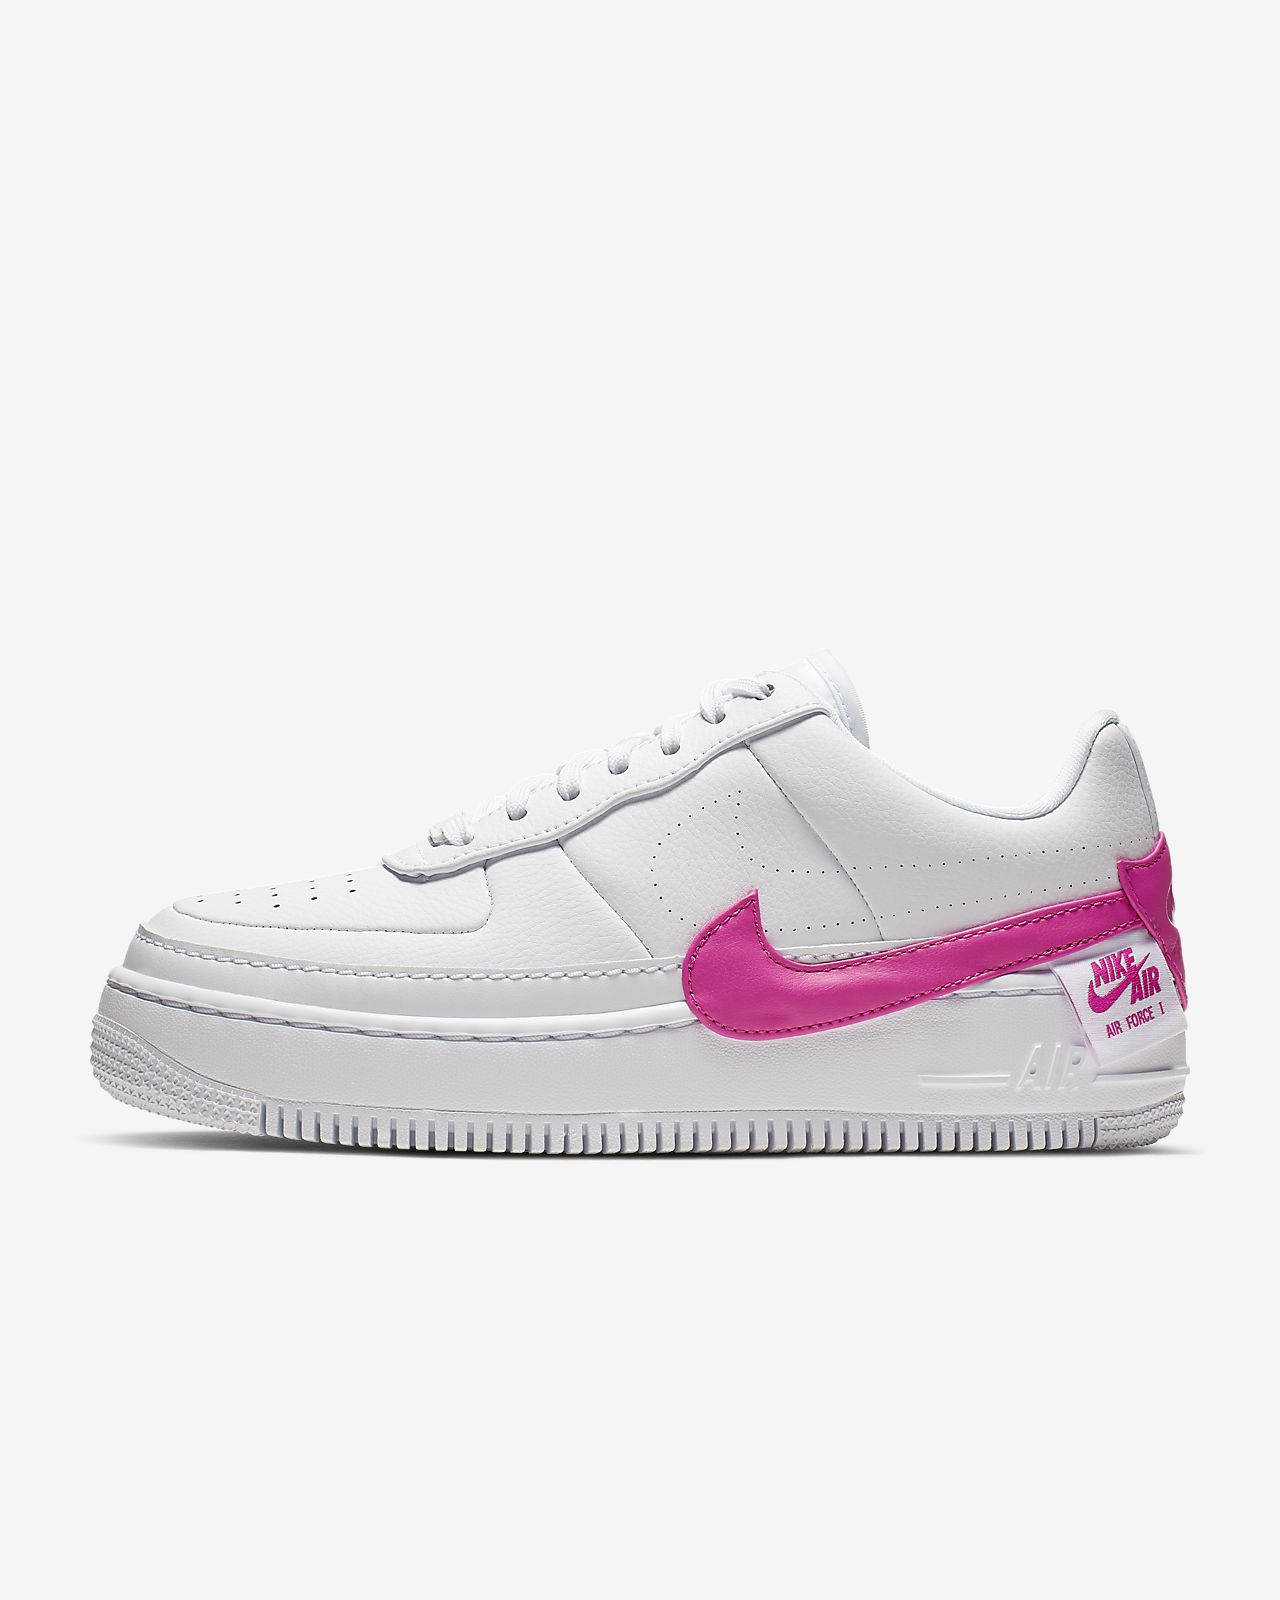 4e376b0f384 Nike Air Force 1 Jester XX Shoe. Nike.com